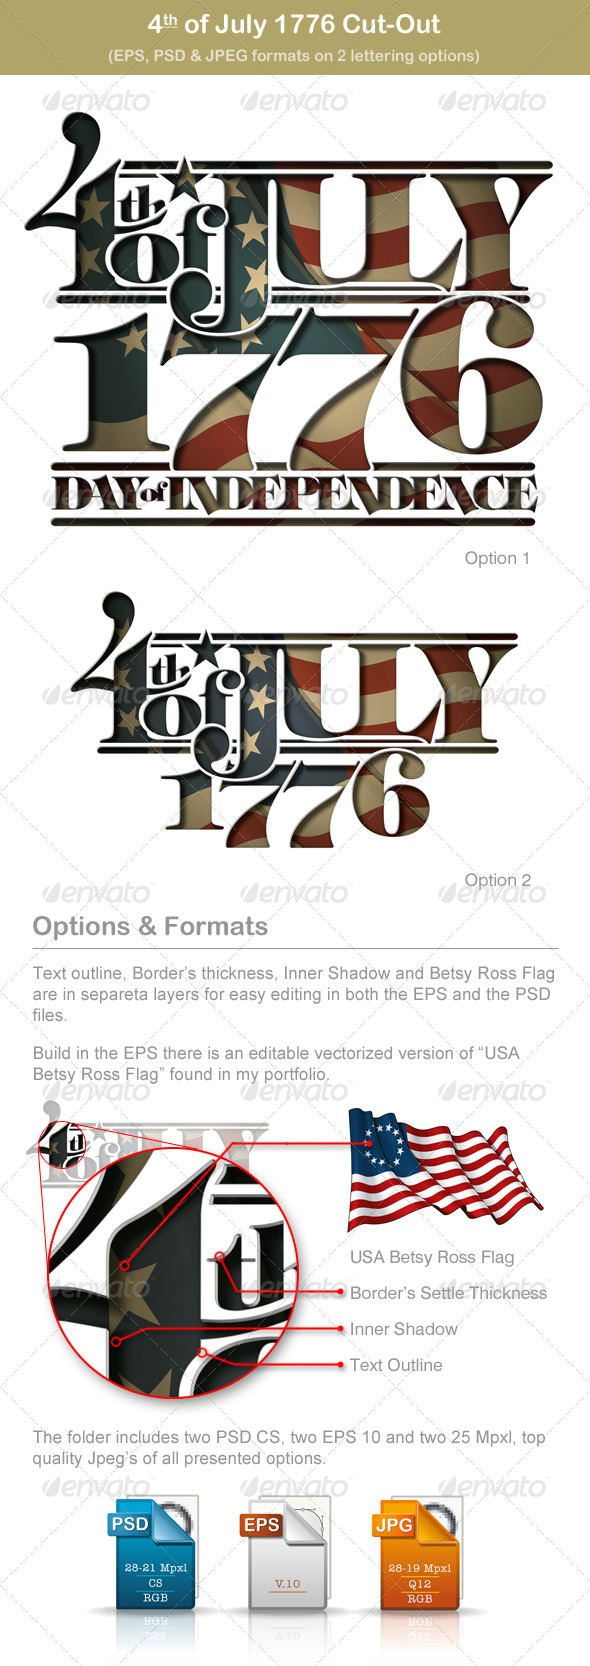 4th of July 1776 Cut-Out